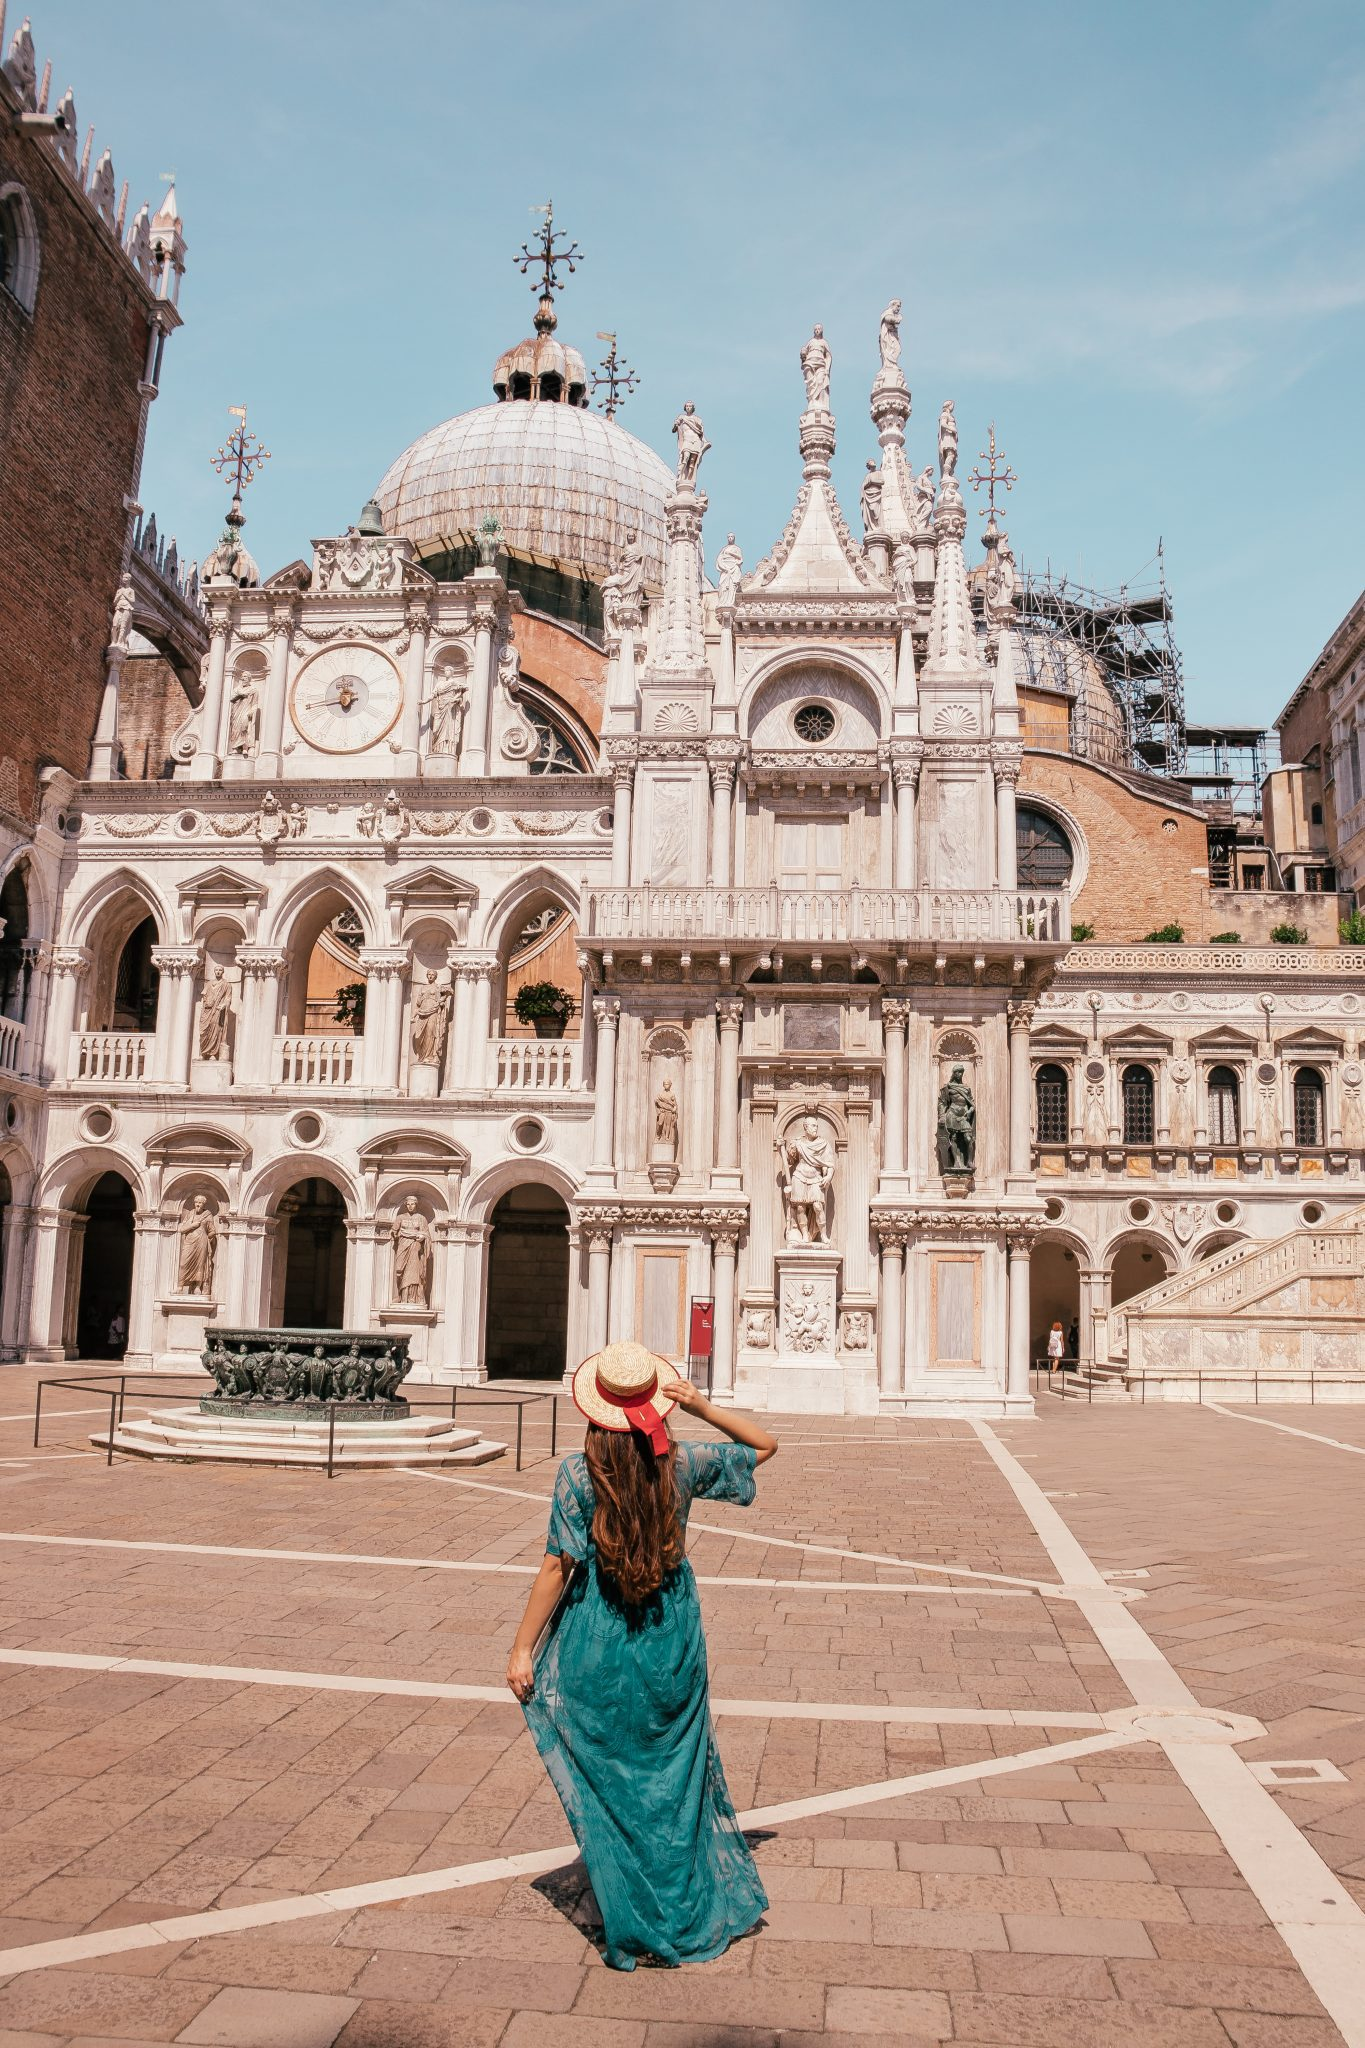 Most Instagrammable Places In Venice - Doge's Palace